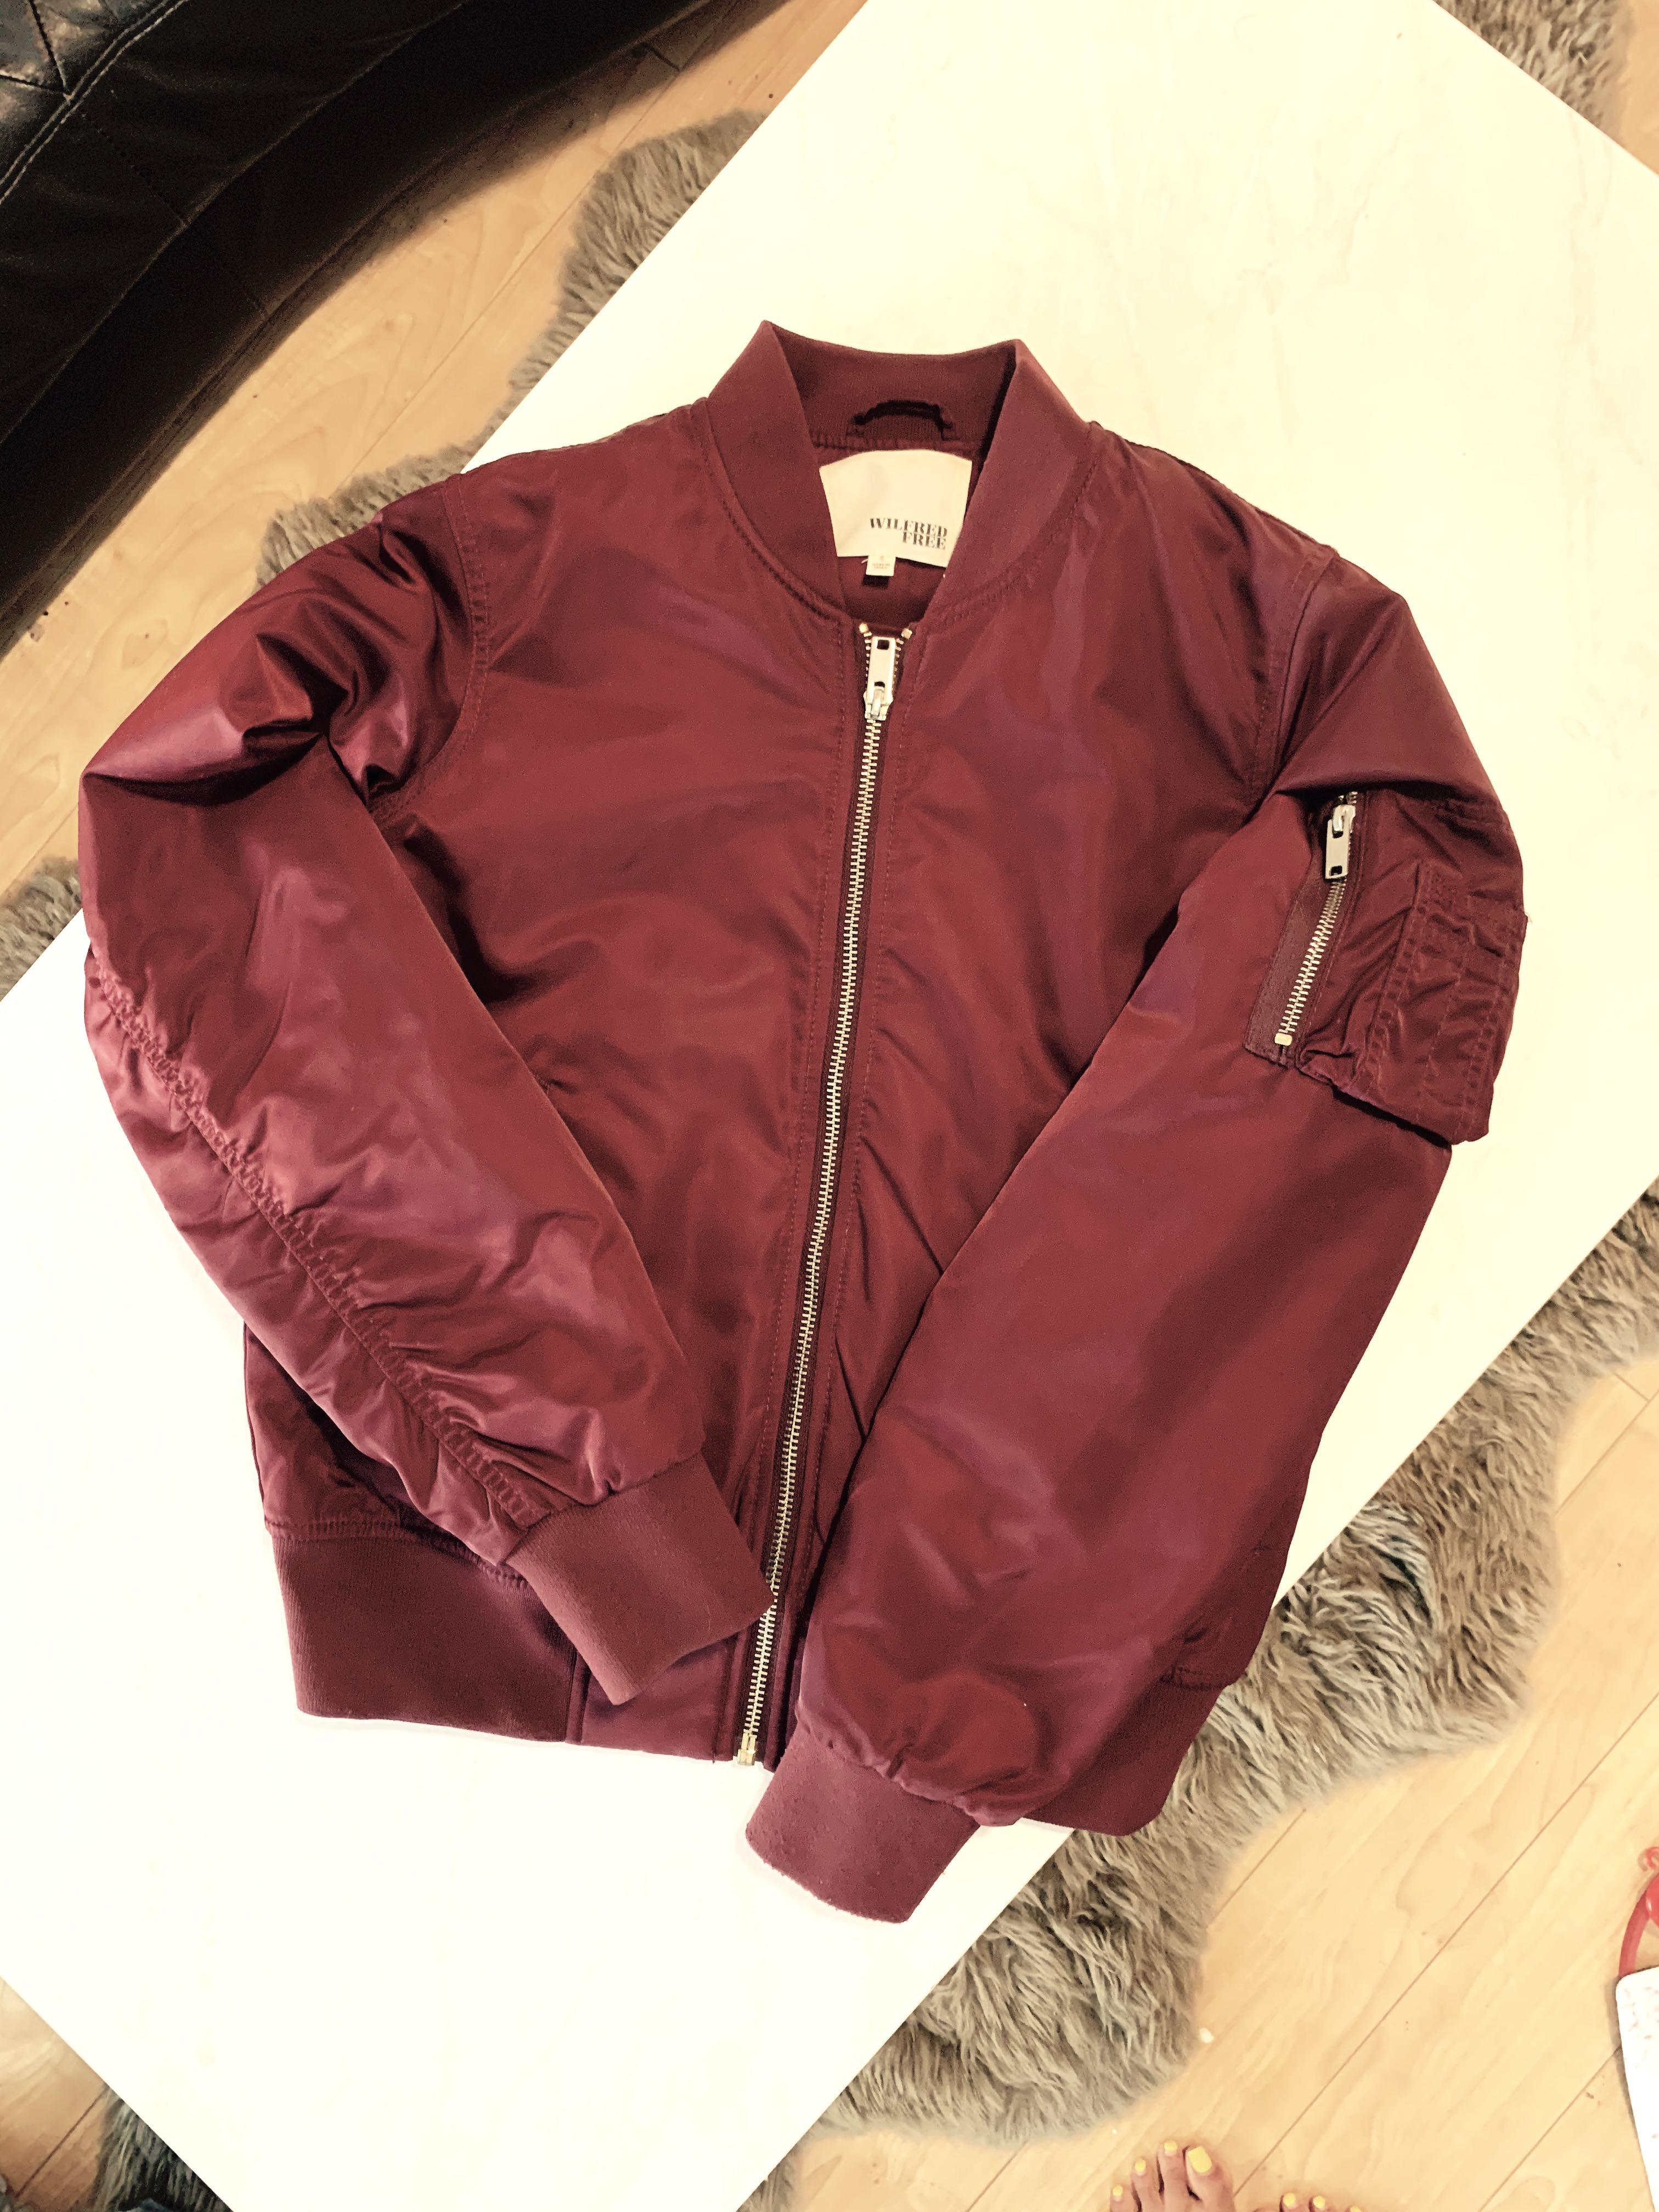 Wilfred - bomber jacket - size S